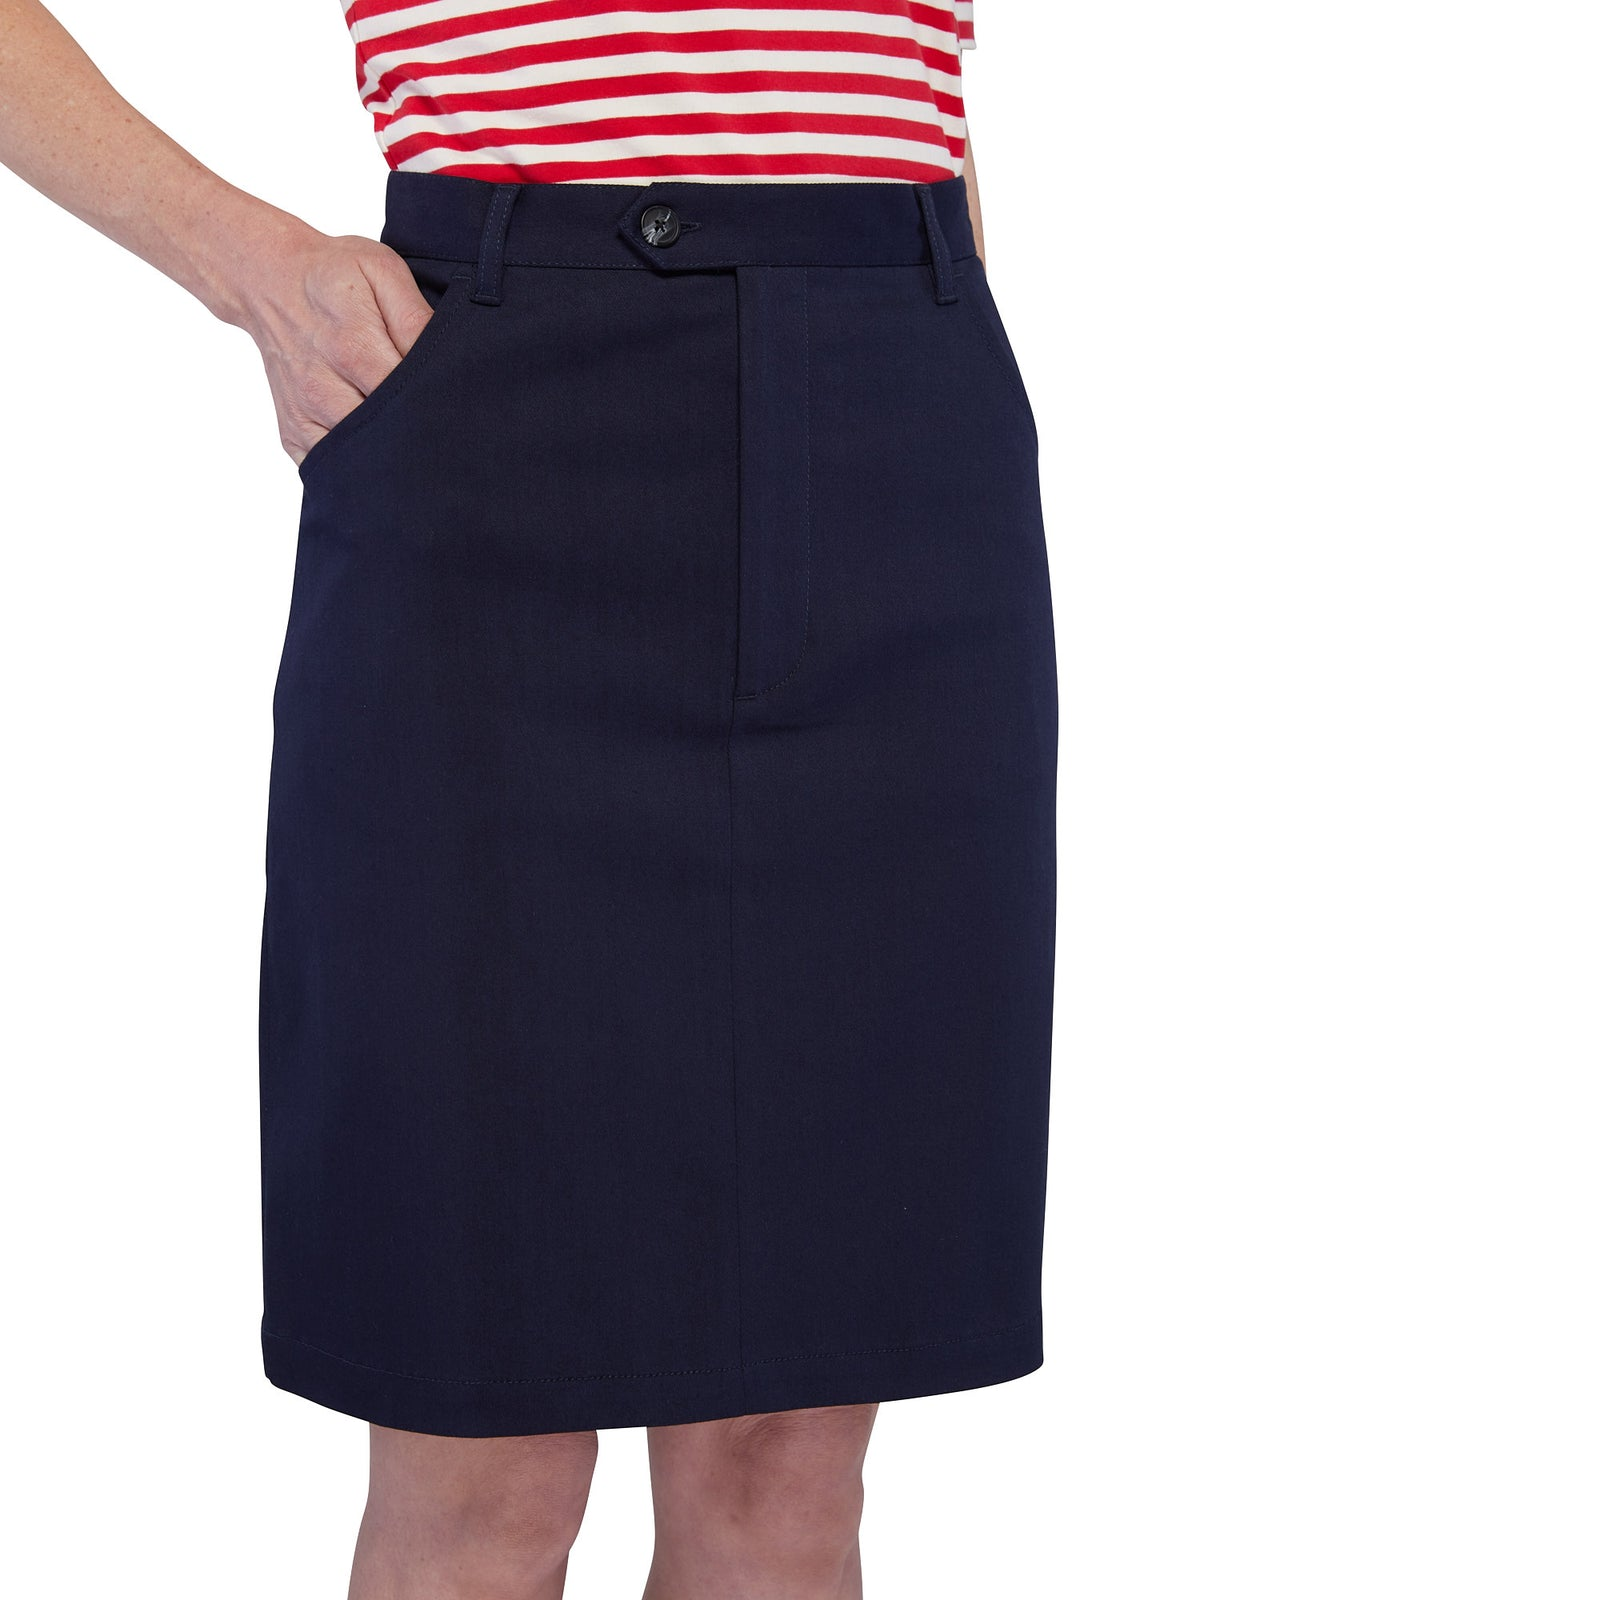 Zip Front Mini Skirt - Navy